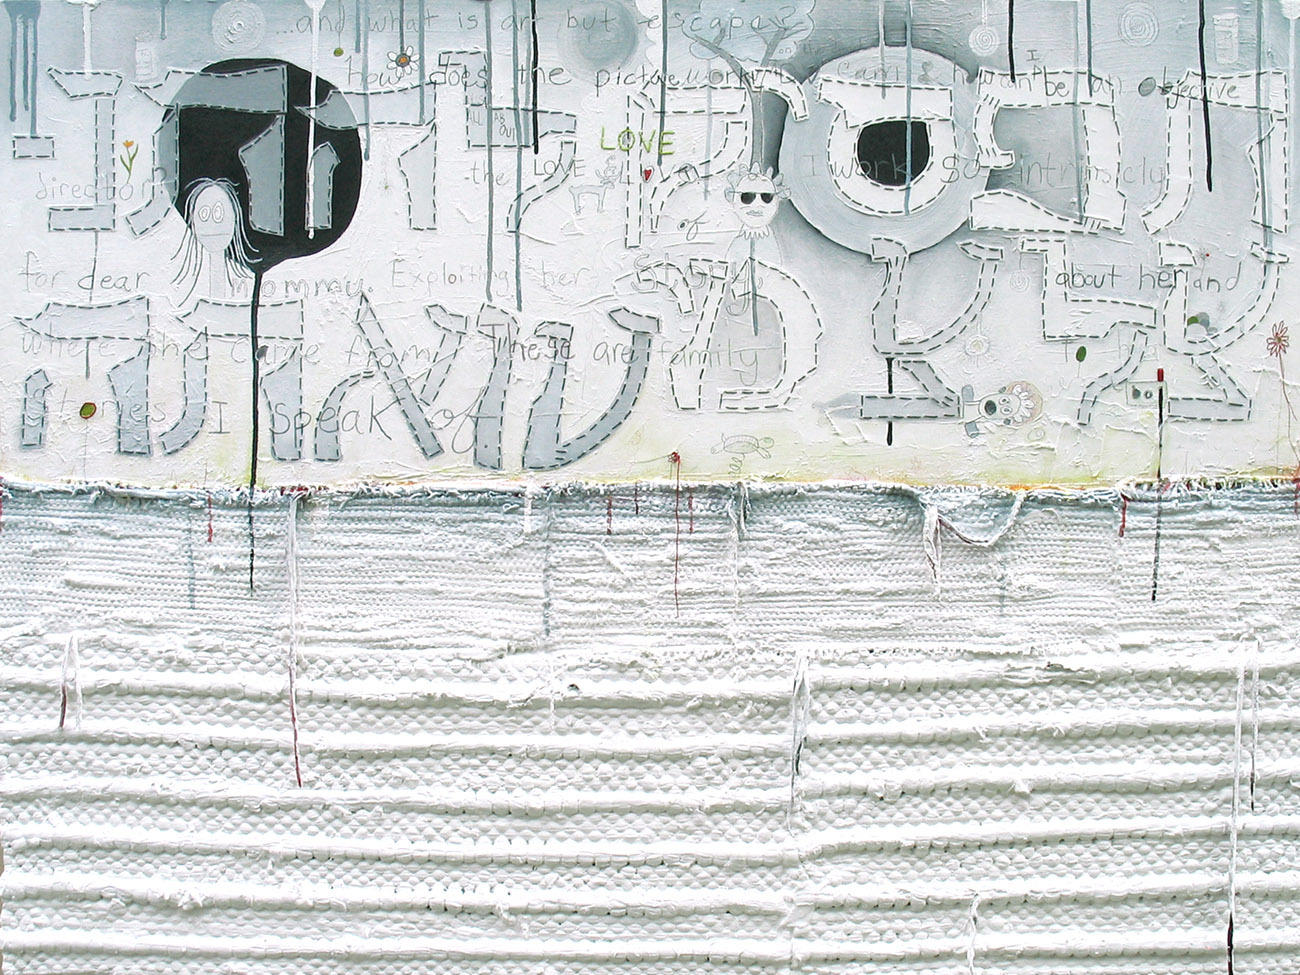 Stop Apologizing for Who You Are, 2008.    Oil, paper patterns, pencil, thread, woven rugs on canvas. 36 x 48 inches. Image courtesy of the artist.